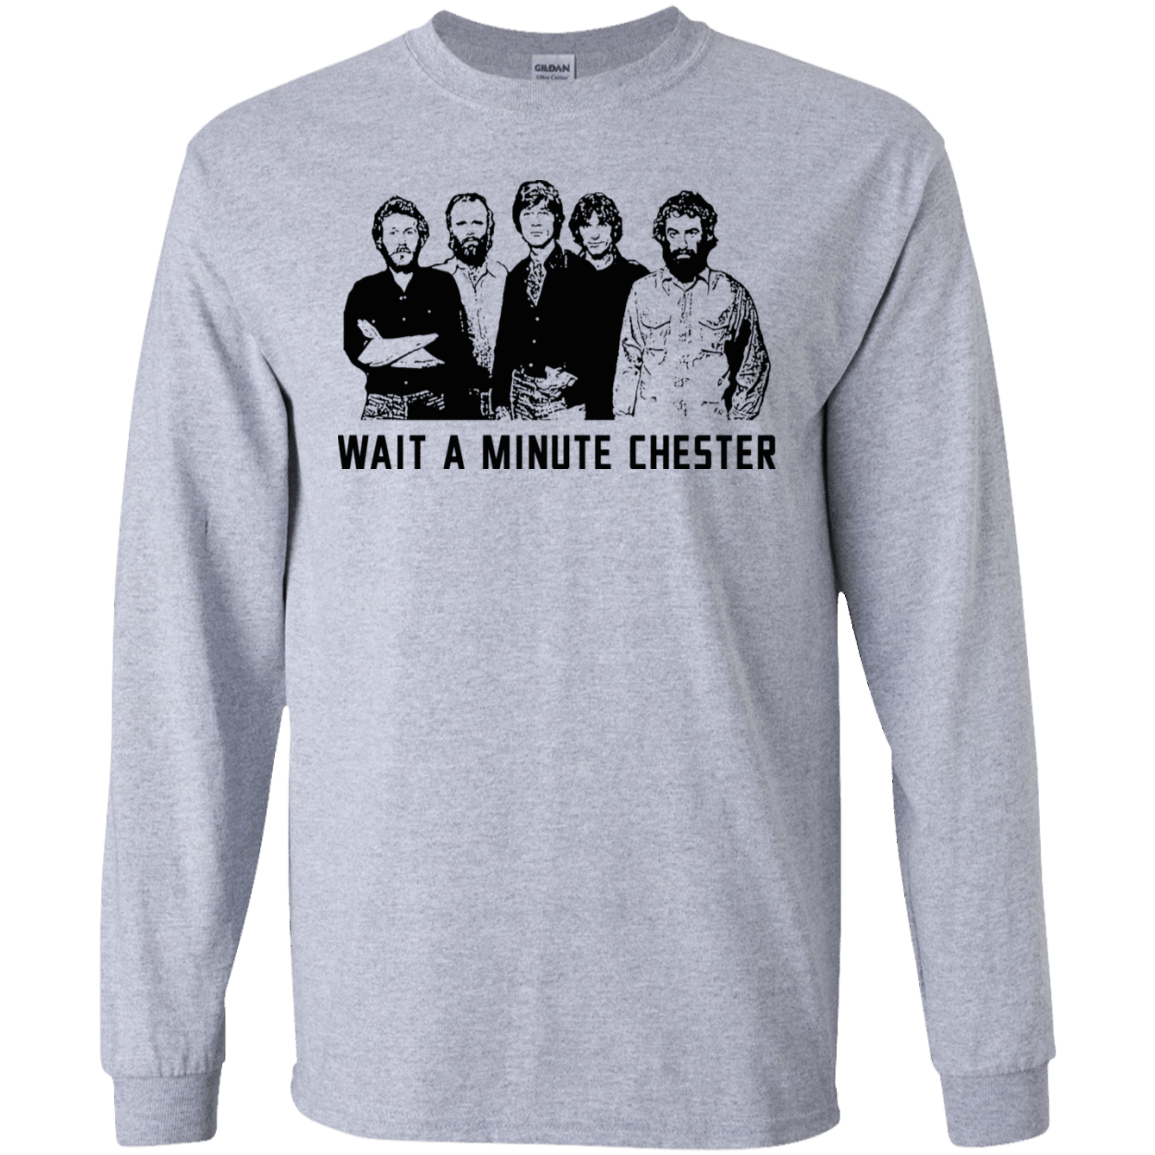 Wait A Minute Chester The Band Version 30-188-73889088-335 - Tee Ript